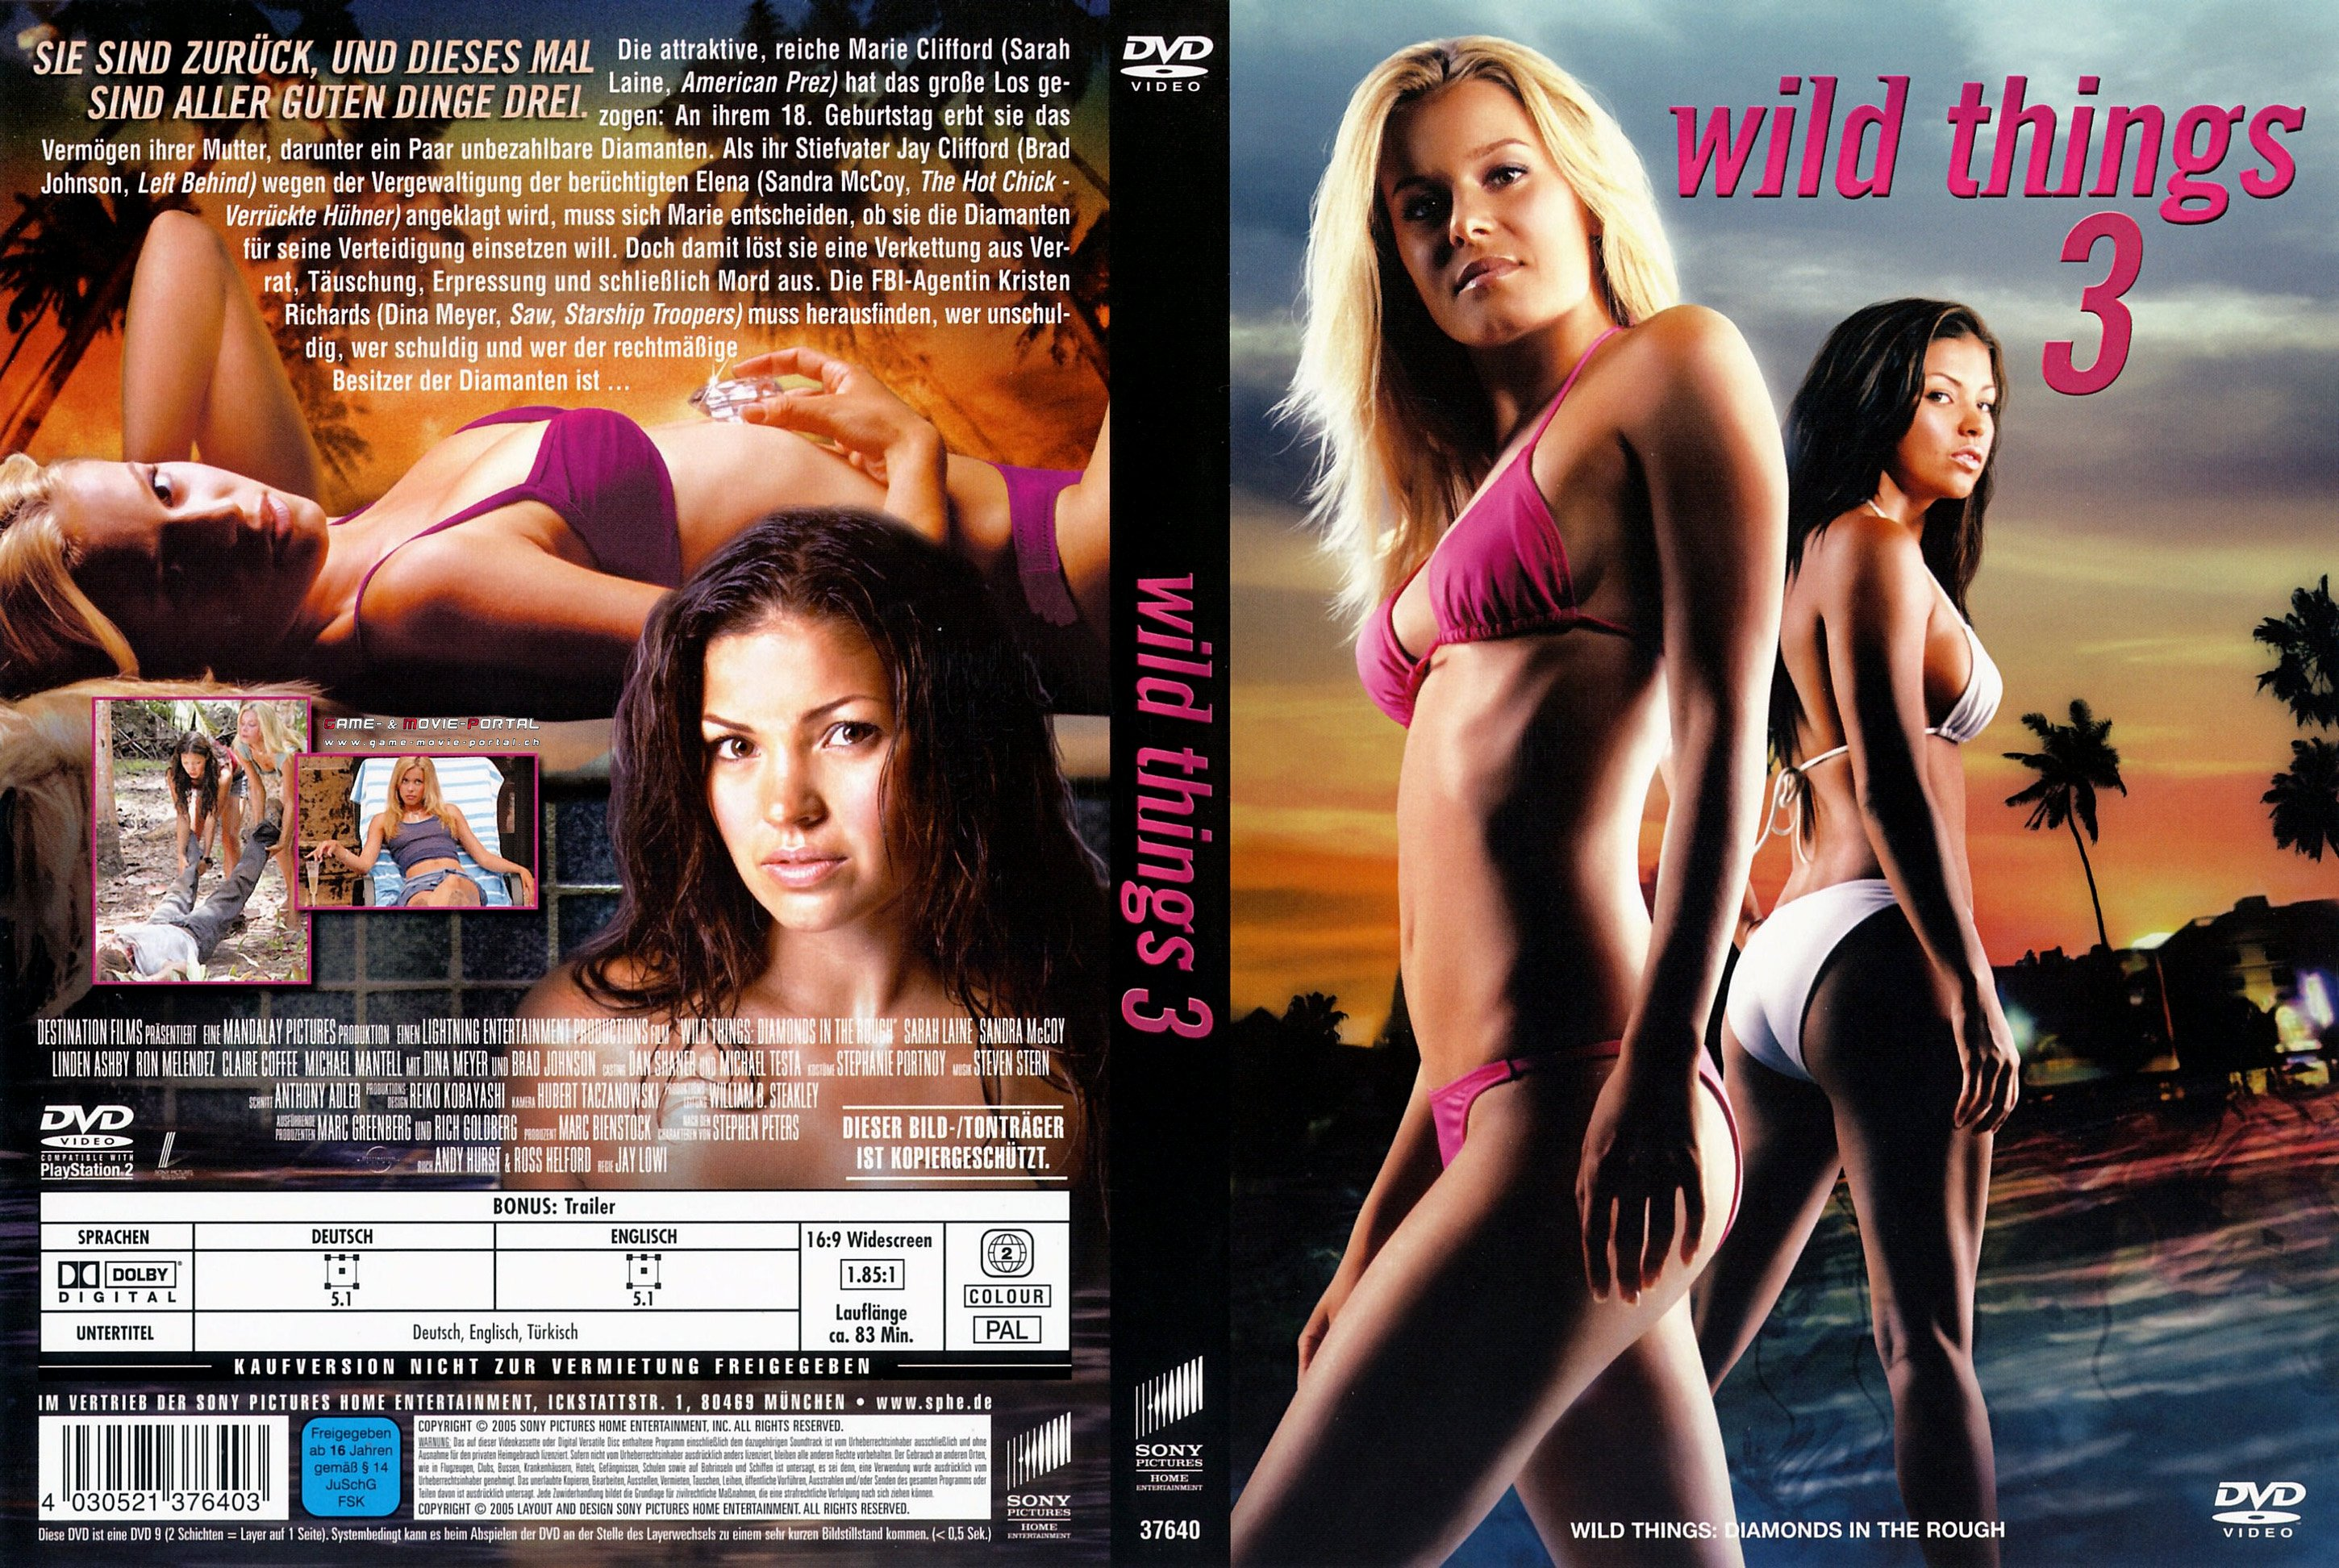 Wild Things 3 dvd cover german | German DVD Covers